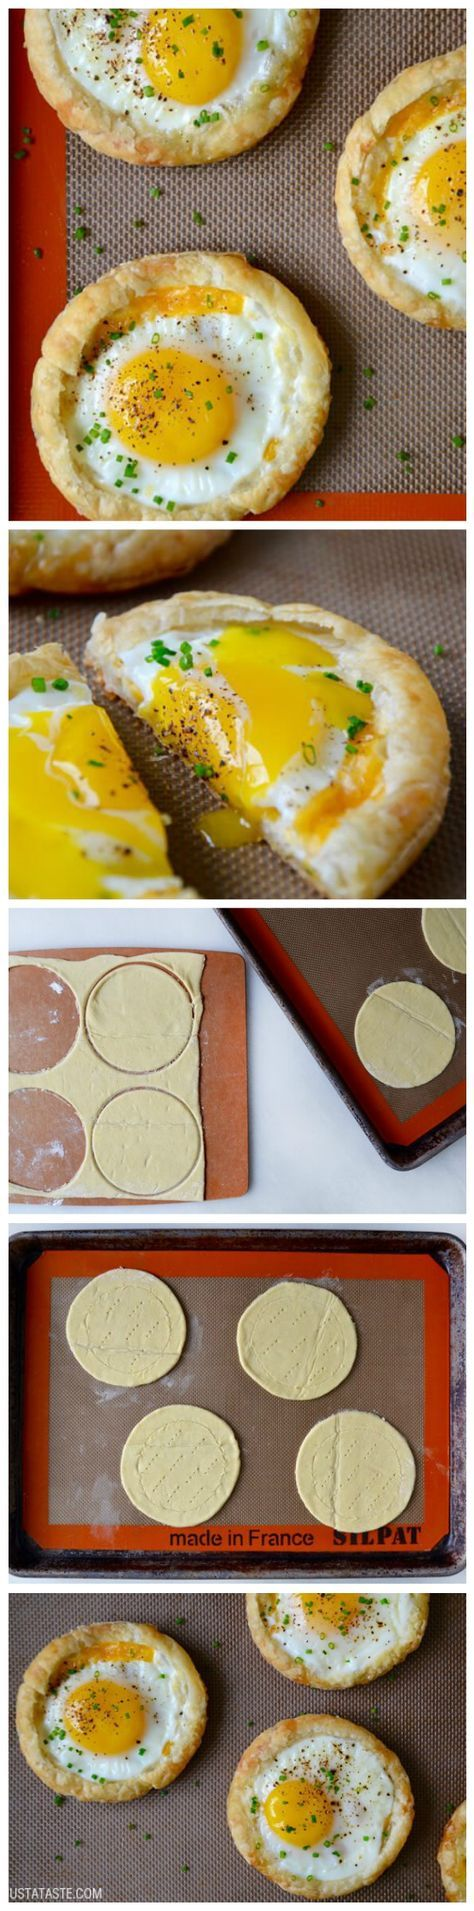 How To Make Tasty Cheesy Puff Pastry Baked Eggs